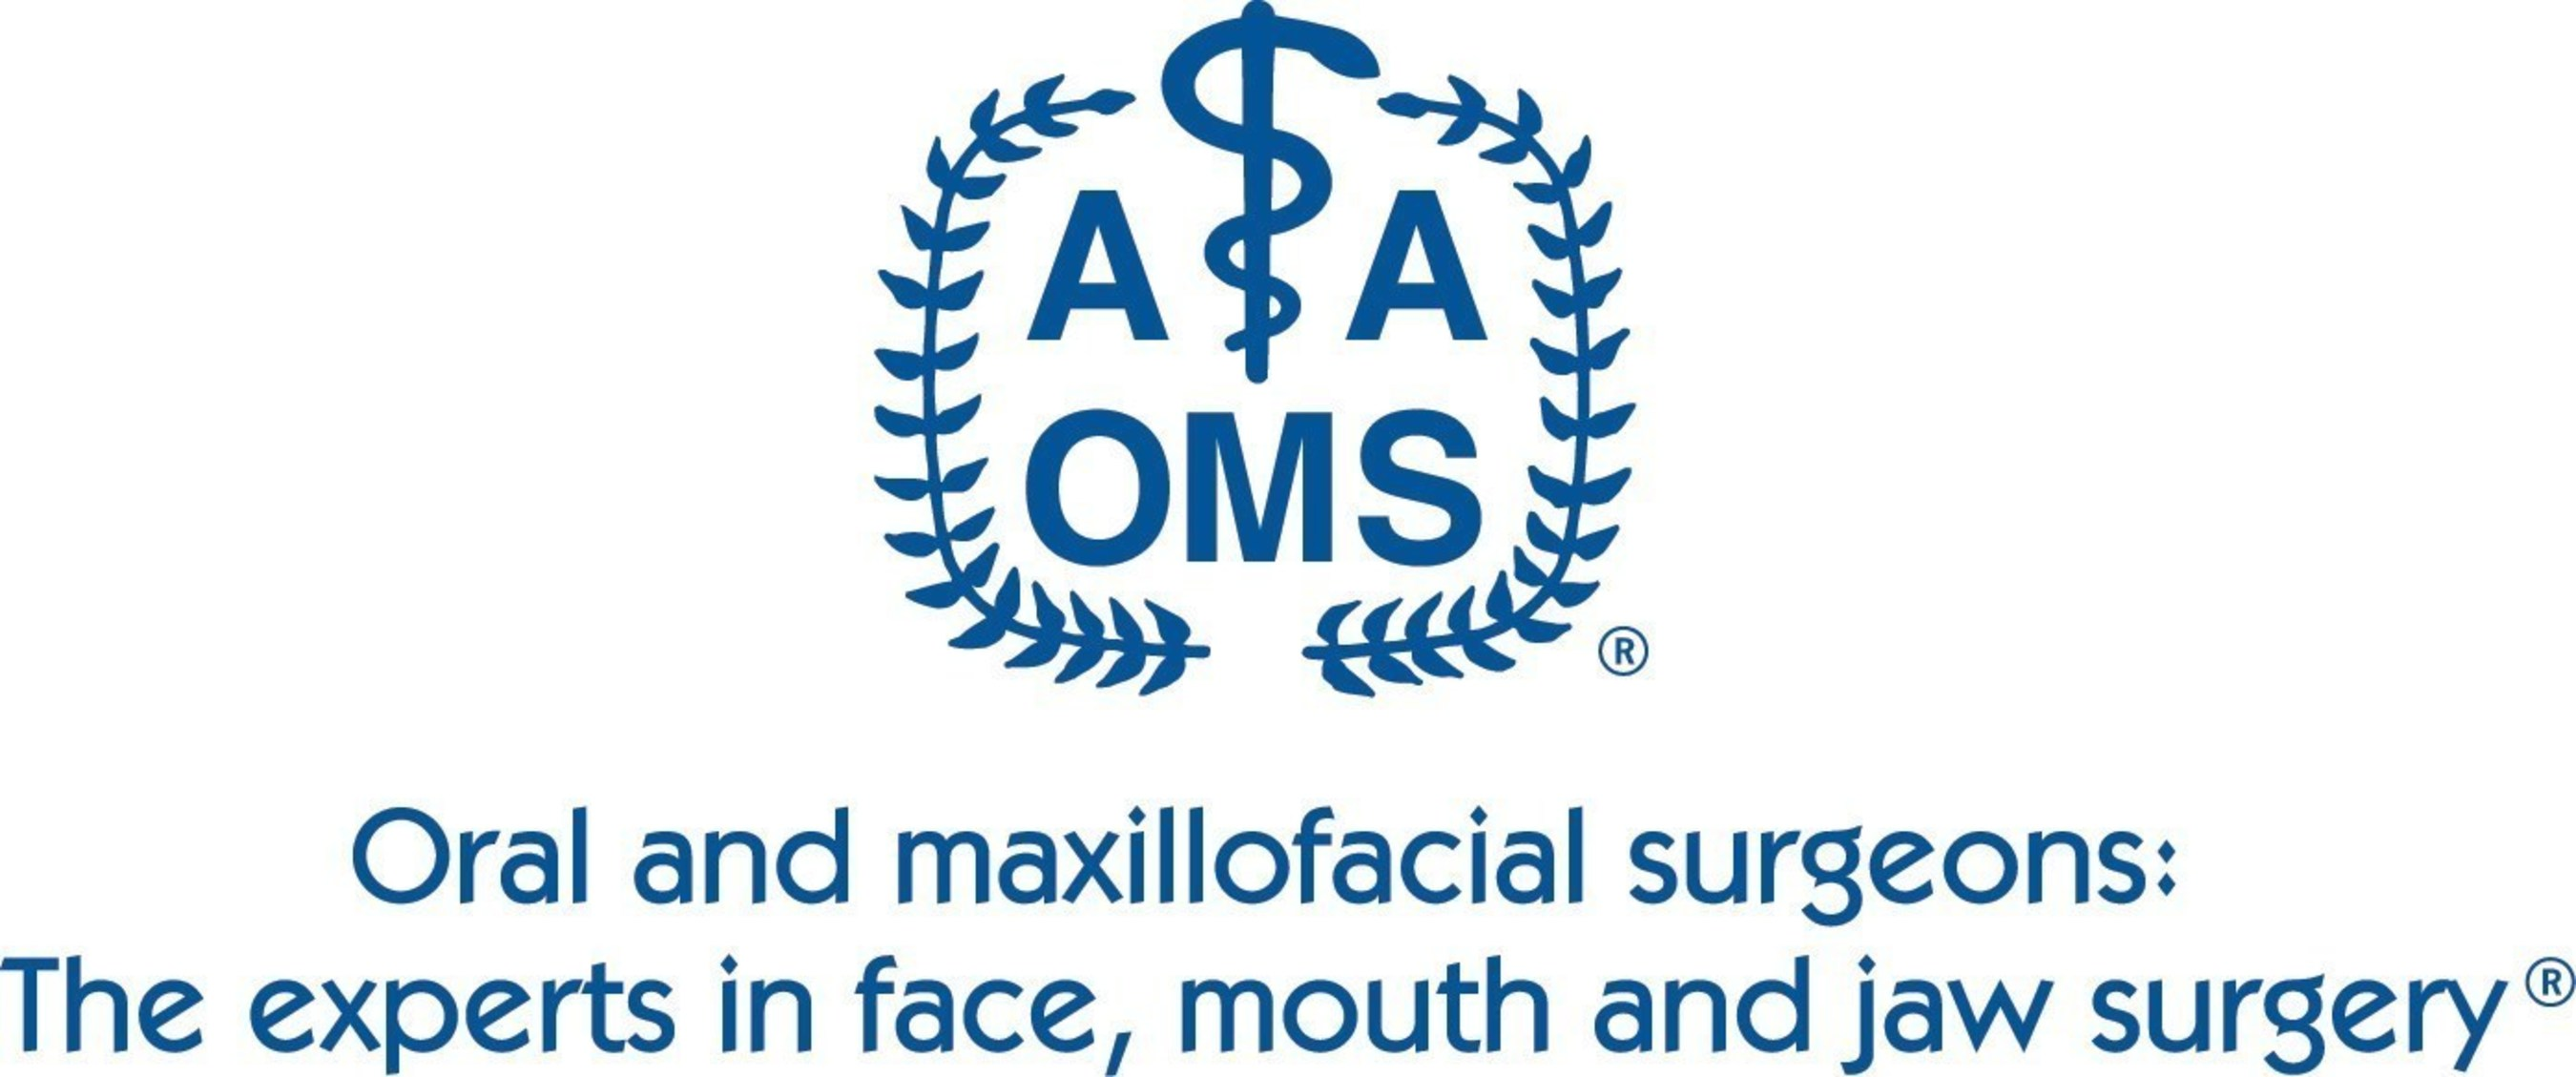 The experts in face, mouth and jaw surgery(TM) - The American Association of Oral and Maxillofacial Surgeons ...